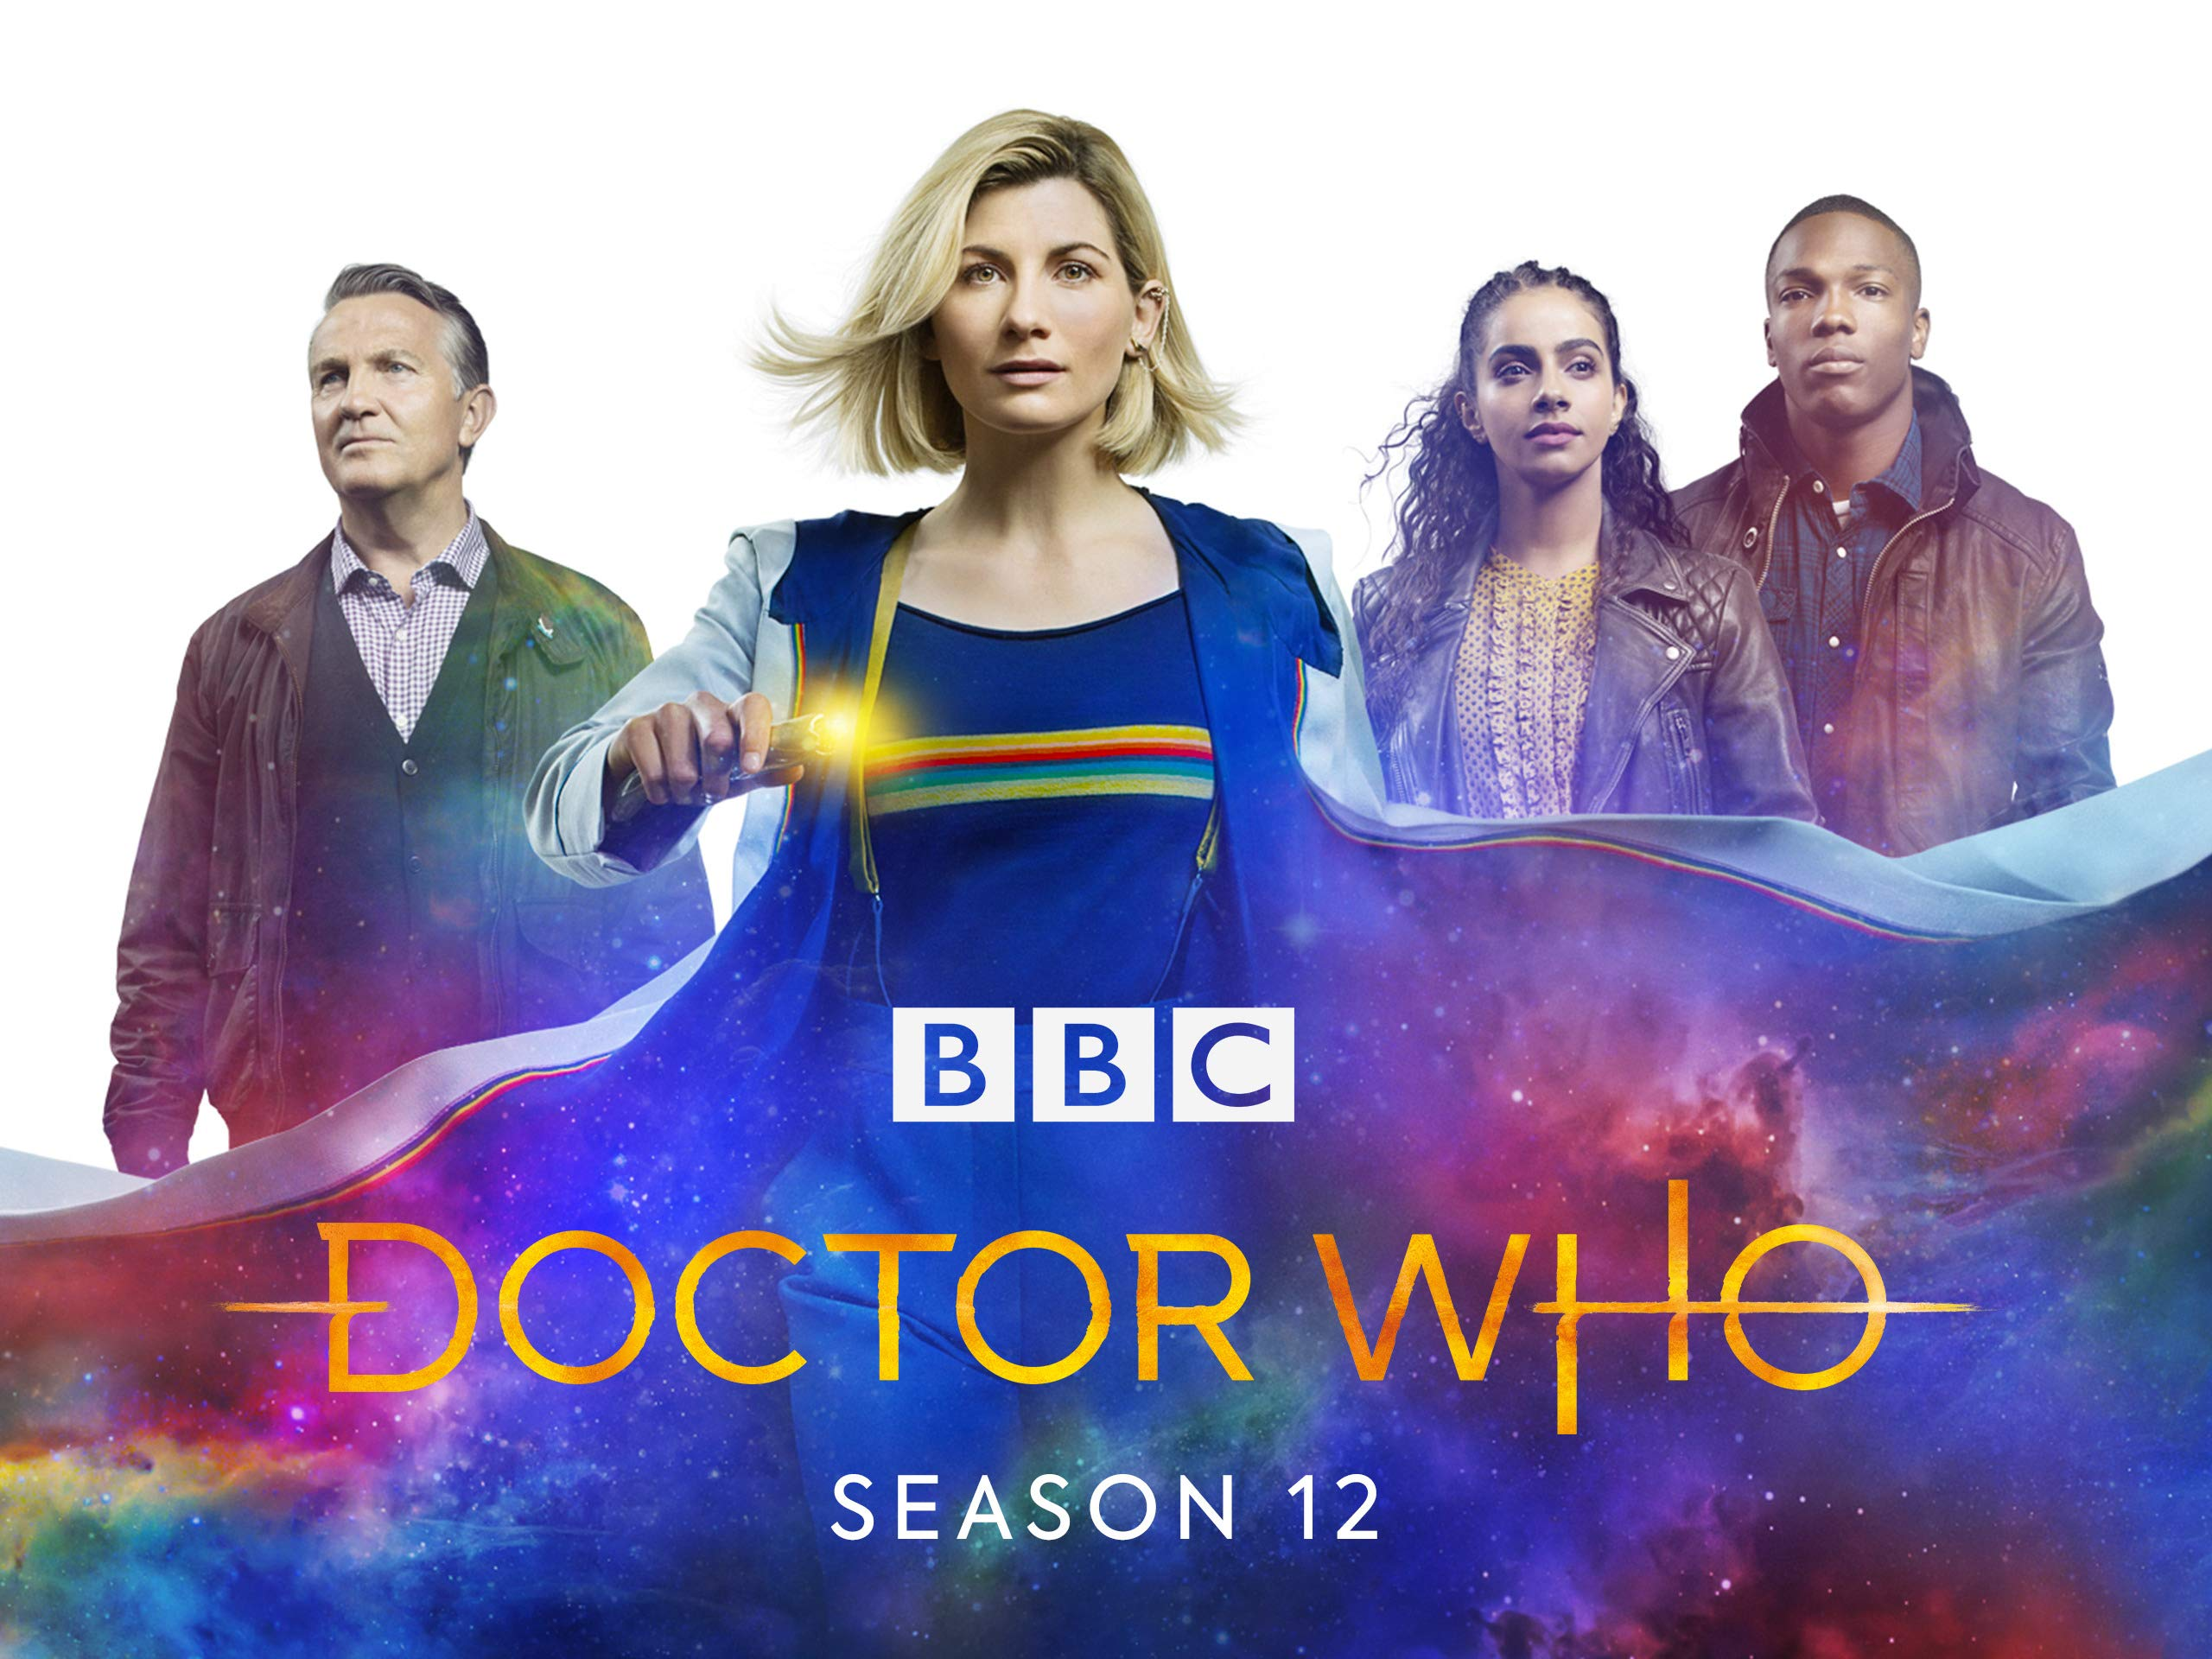 dr who episodes online free streaming